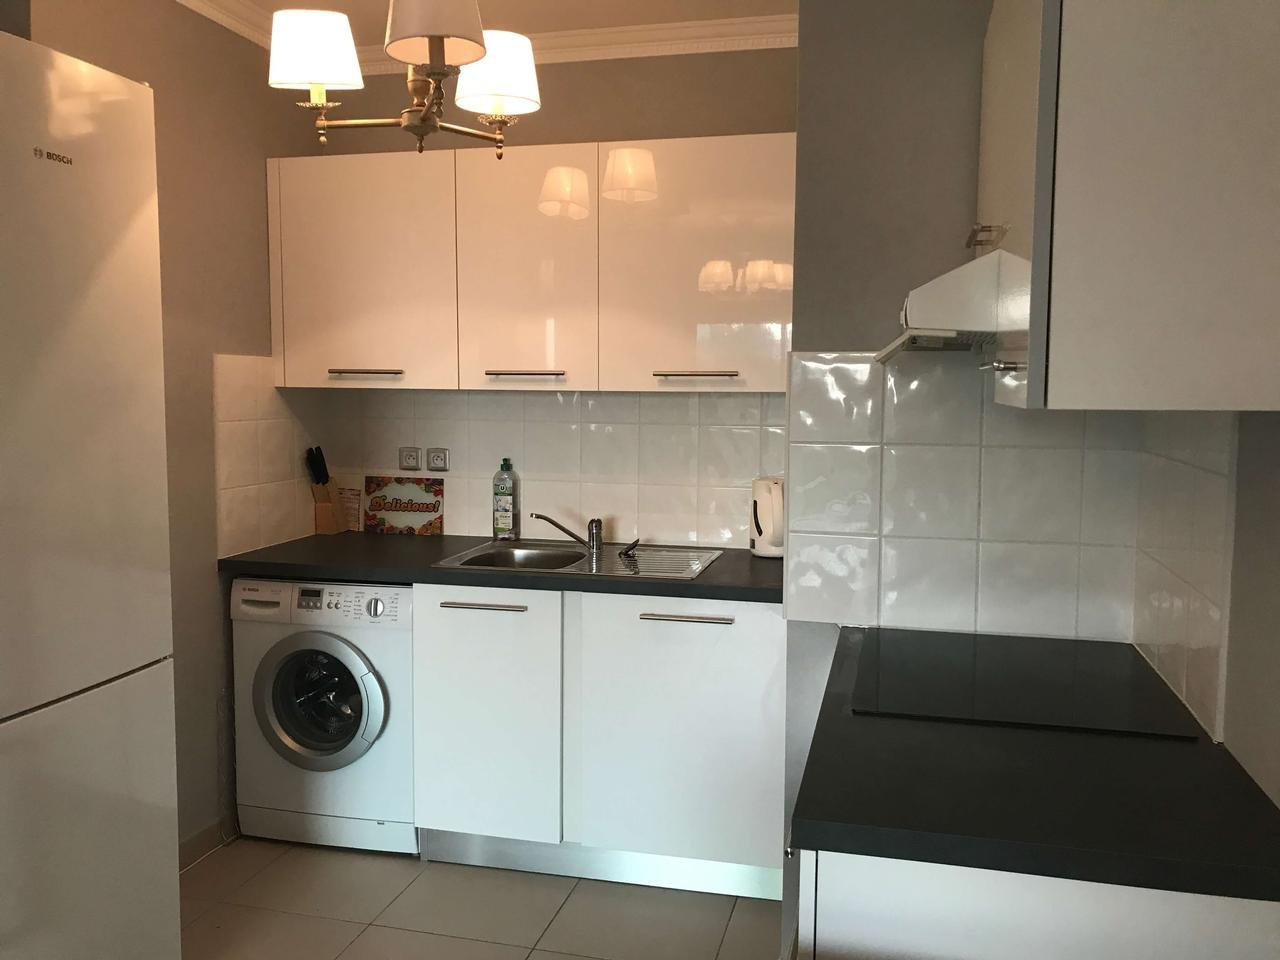 Appartement  2 Rooms 42m2  for sale   310000 €